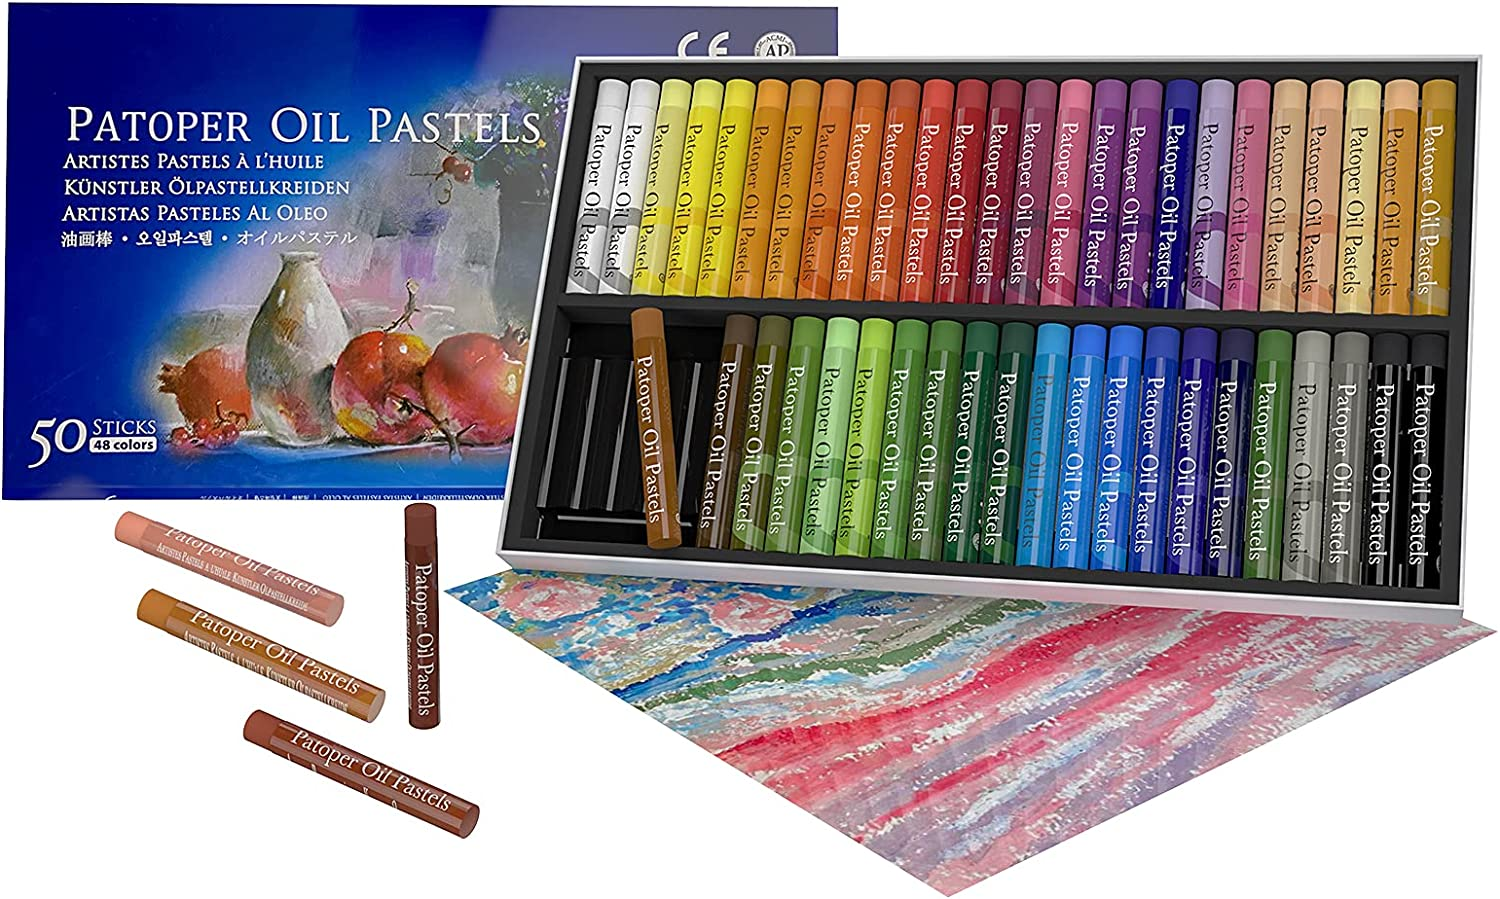 Soft Oil Pastels Set, Artist Drawing Pastel Painting Art Crayons Sticks Round Crayons Sticks Non Toxic Art Supplies for Kid Adults Student Beginner Colouring 50 Colors : Office Products